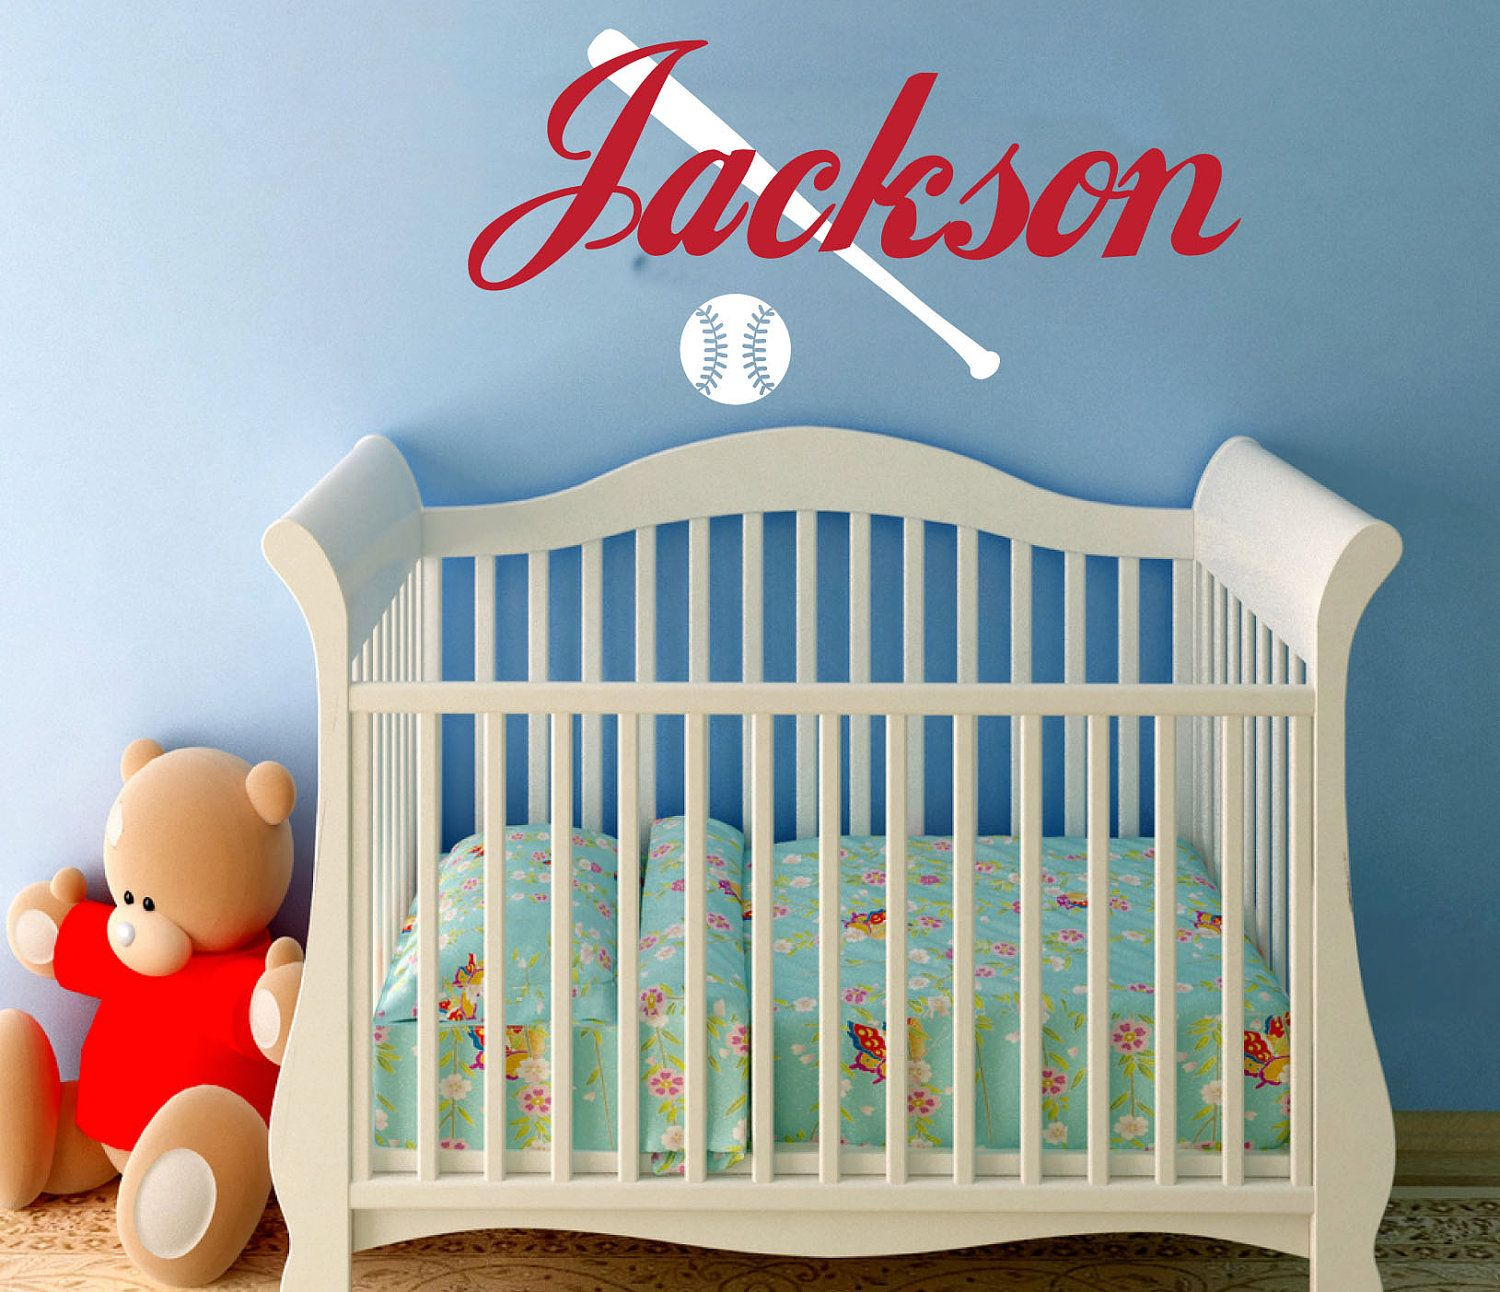 Baseball Wall Decal With Name   Childrenu0027 Nursery Bedroom Decor   Vinyl Wall  Art Sticker